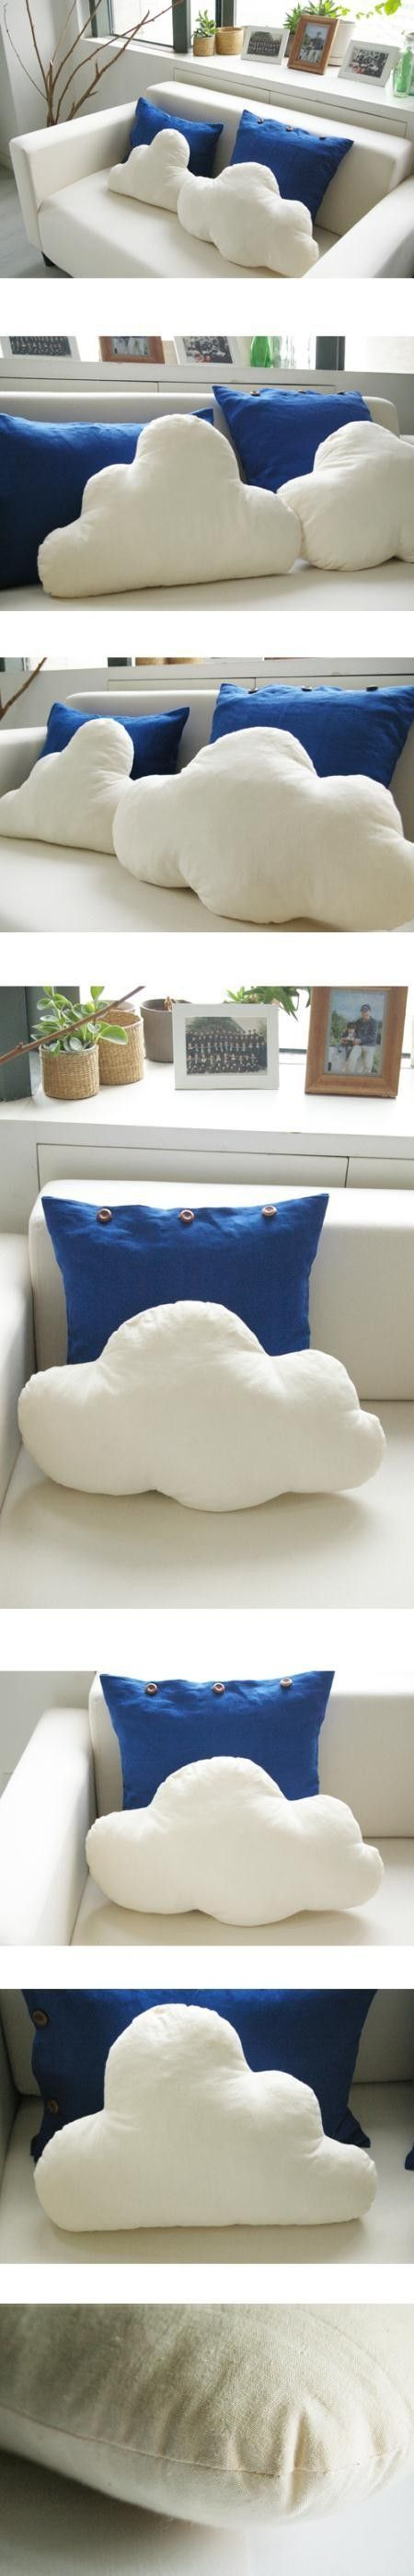 how to clean couch cpillows